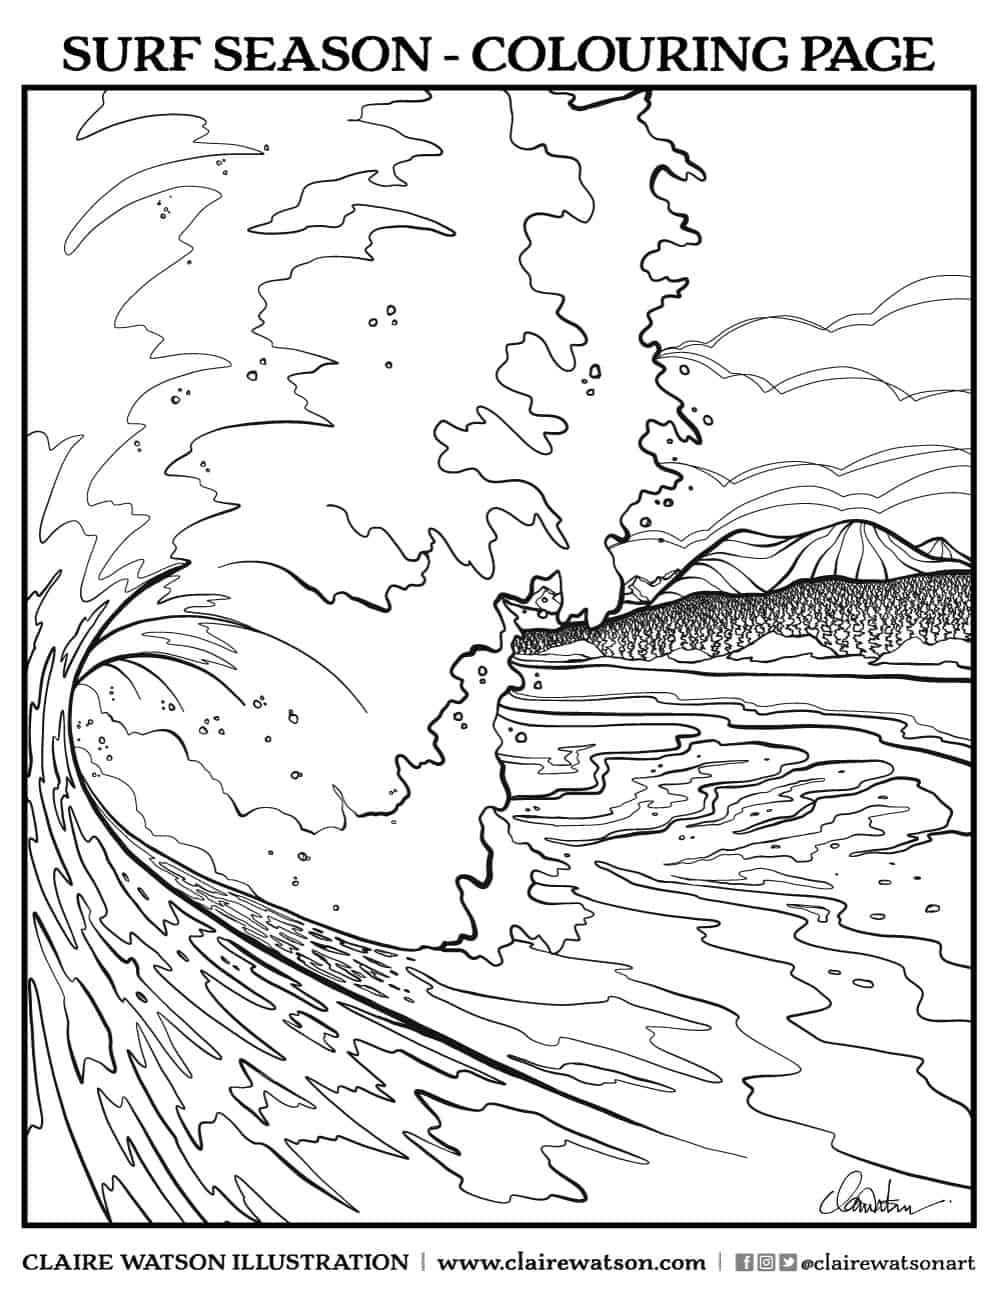 Clair_Watson_colouring_page: Surf_Season